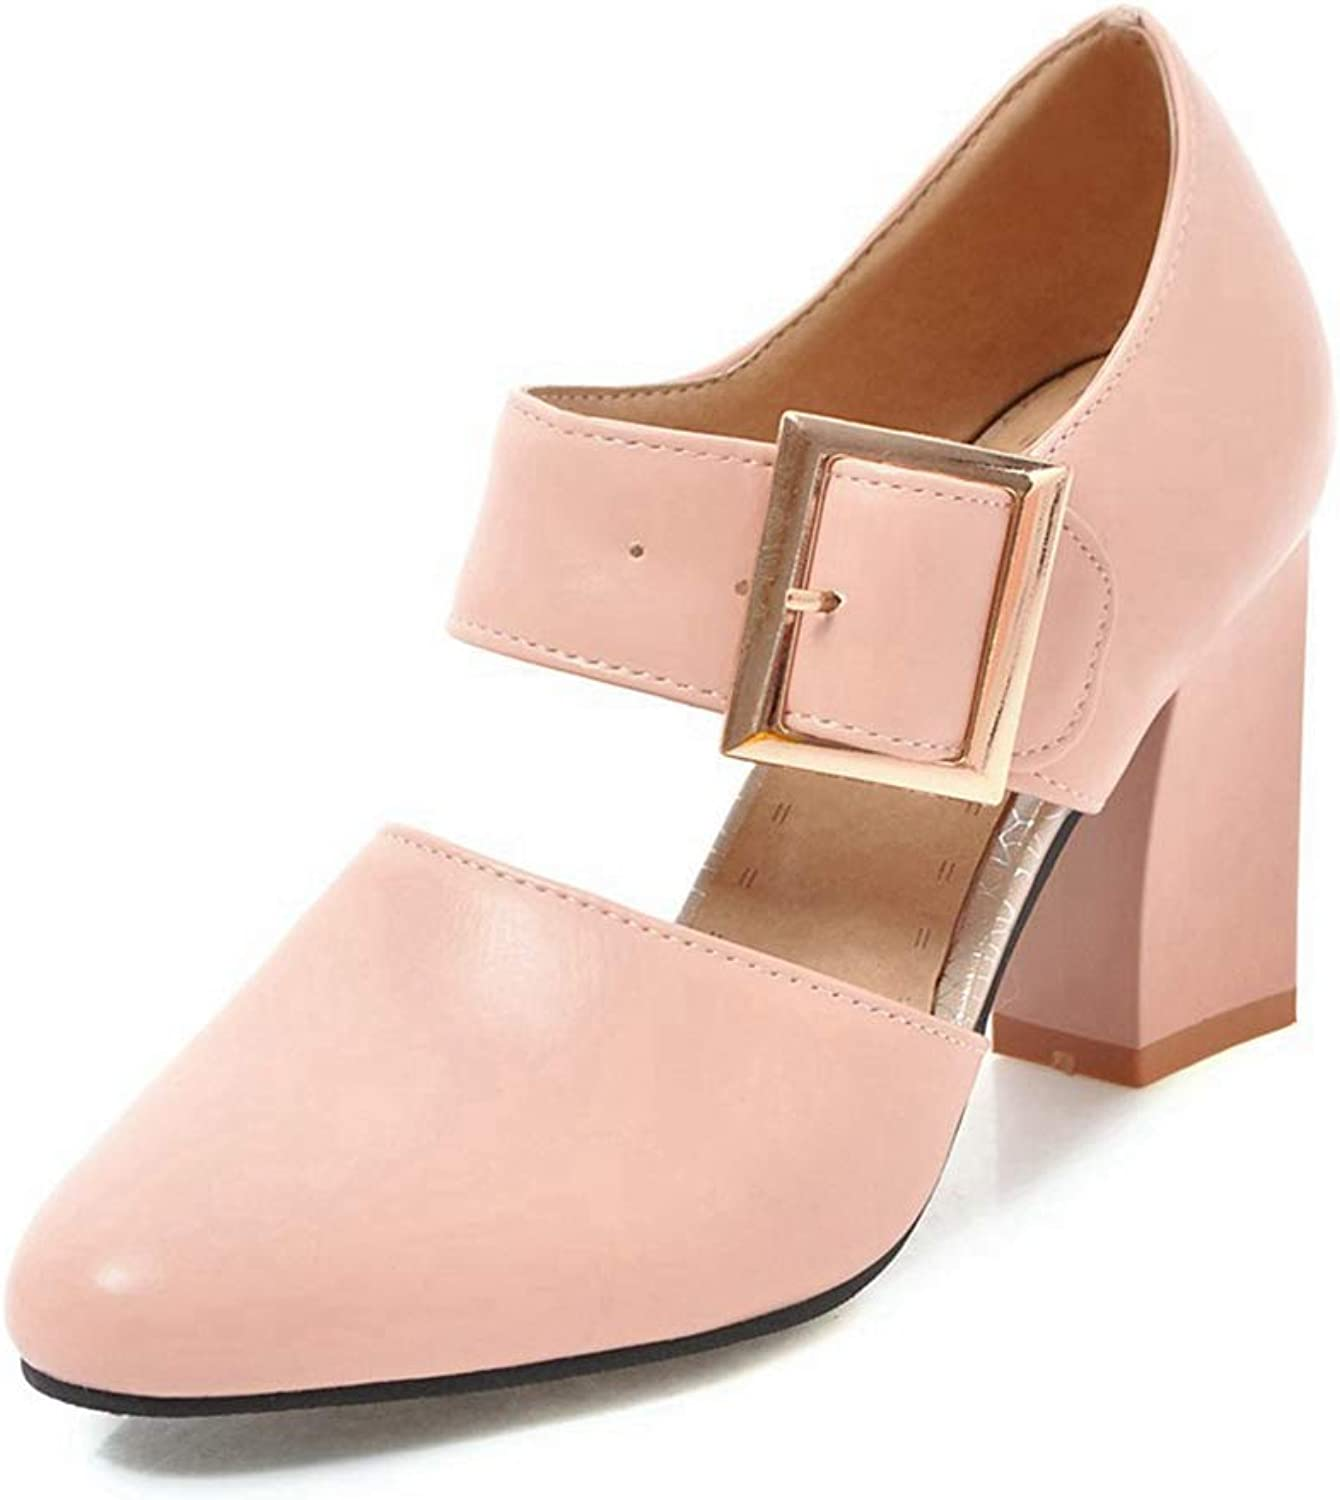 CYBLING Women's Mary Janes Wide Buckle Strap Fashion Pointed Toe High Heel Dress Pumps shoes